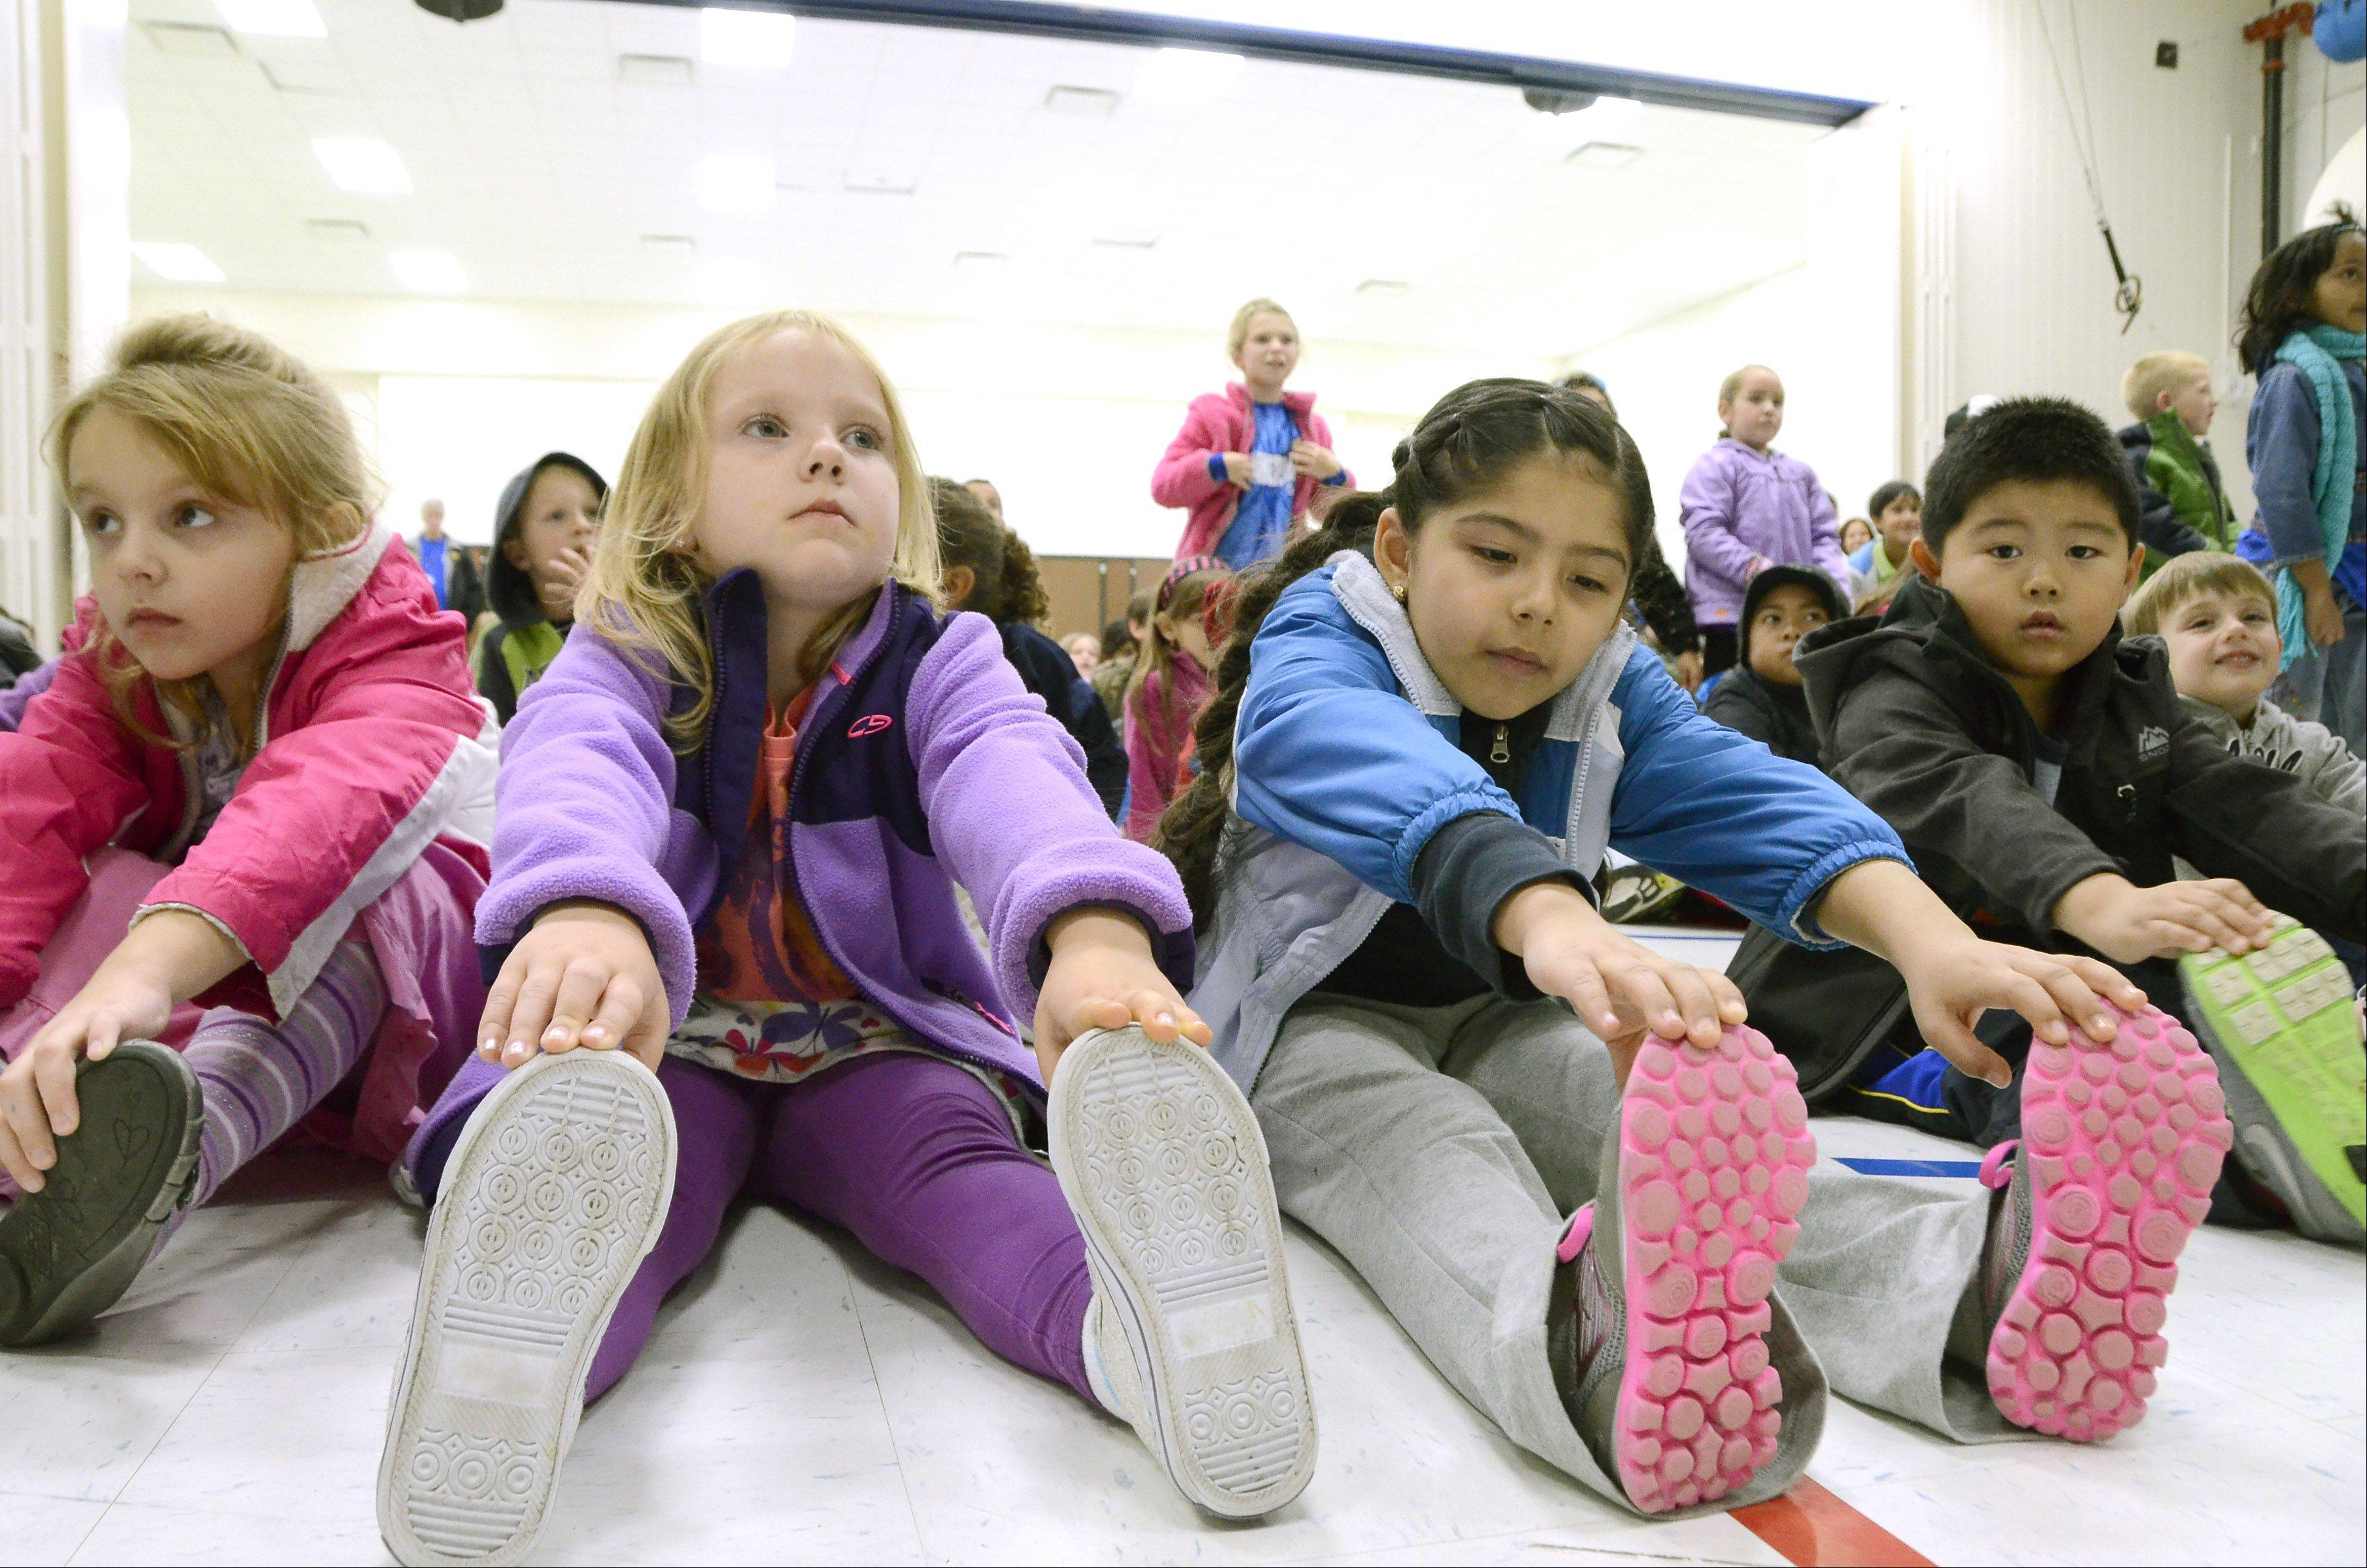 Students from Cumberland Elementary School in Des Plaines warm-up with stretches before walking Friday afternoon to raise money for new playground equipment.